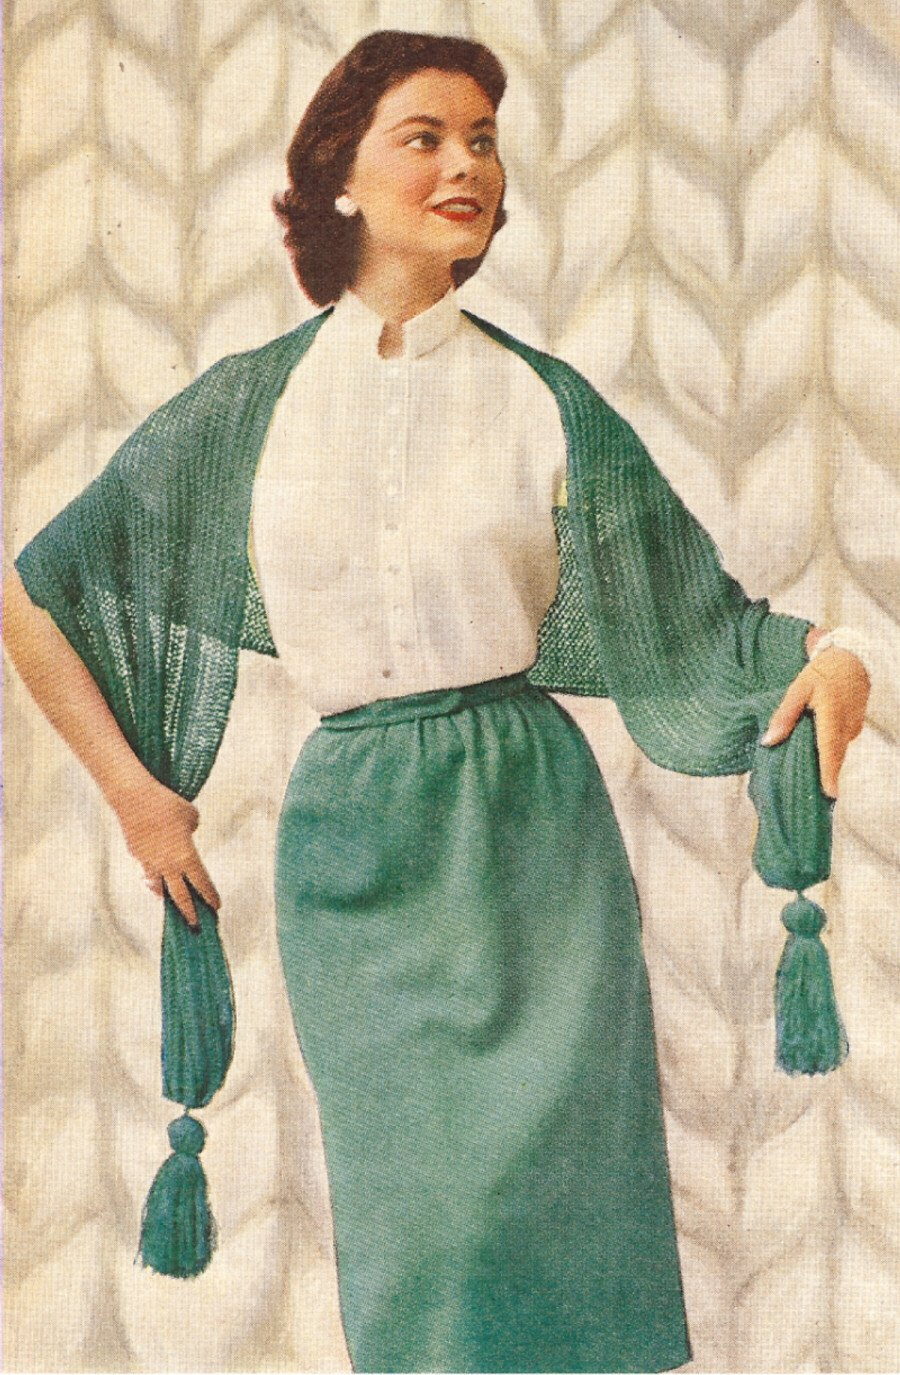 Vintage Scarves- New in the 1920s to 1960s Styles Vintage Knitting PATTERN to make - Knitted Skirt Blouse Stole Wrap Shawl 1950s. NOT a finished item. This is a pattern and/or instructions to make the item only. $7.99 AT vintagedancer.com